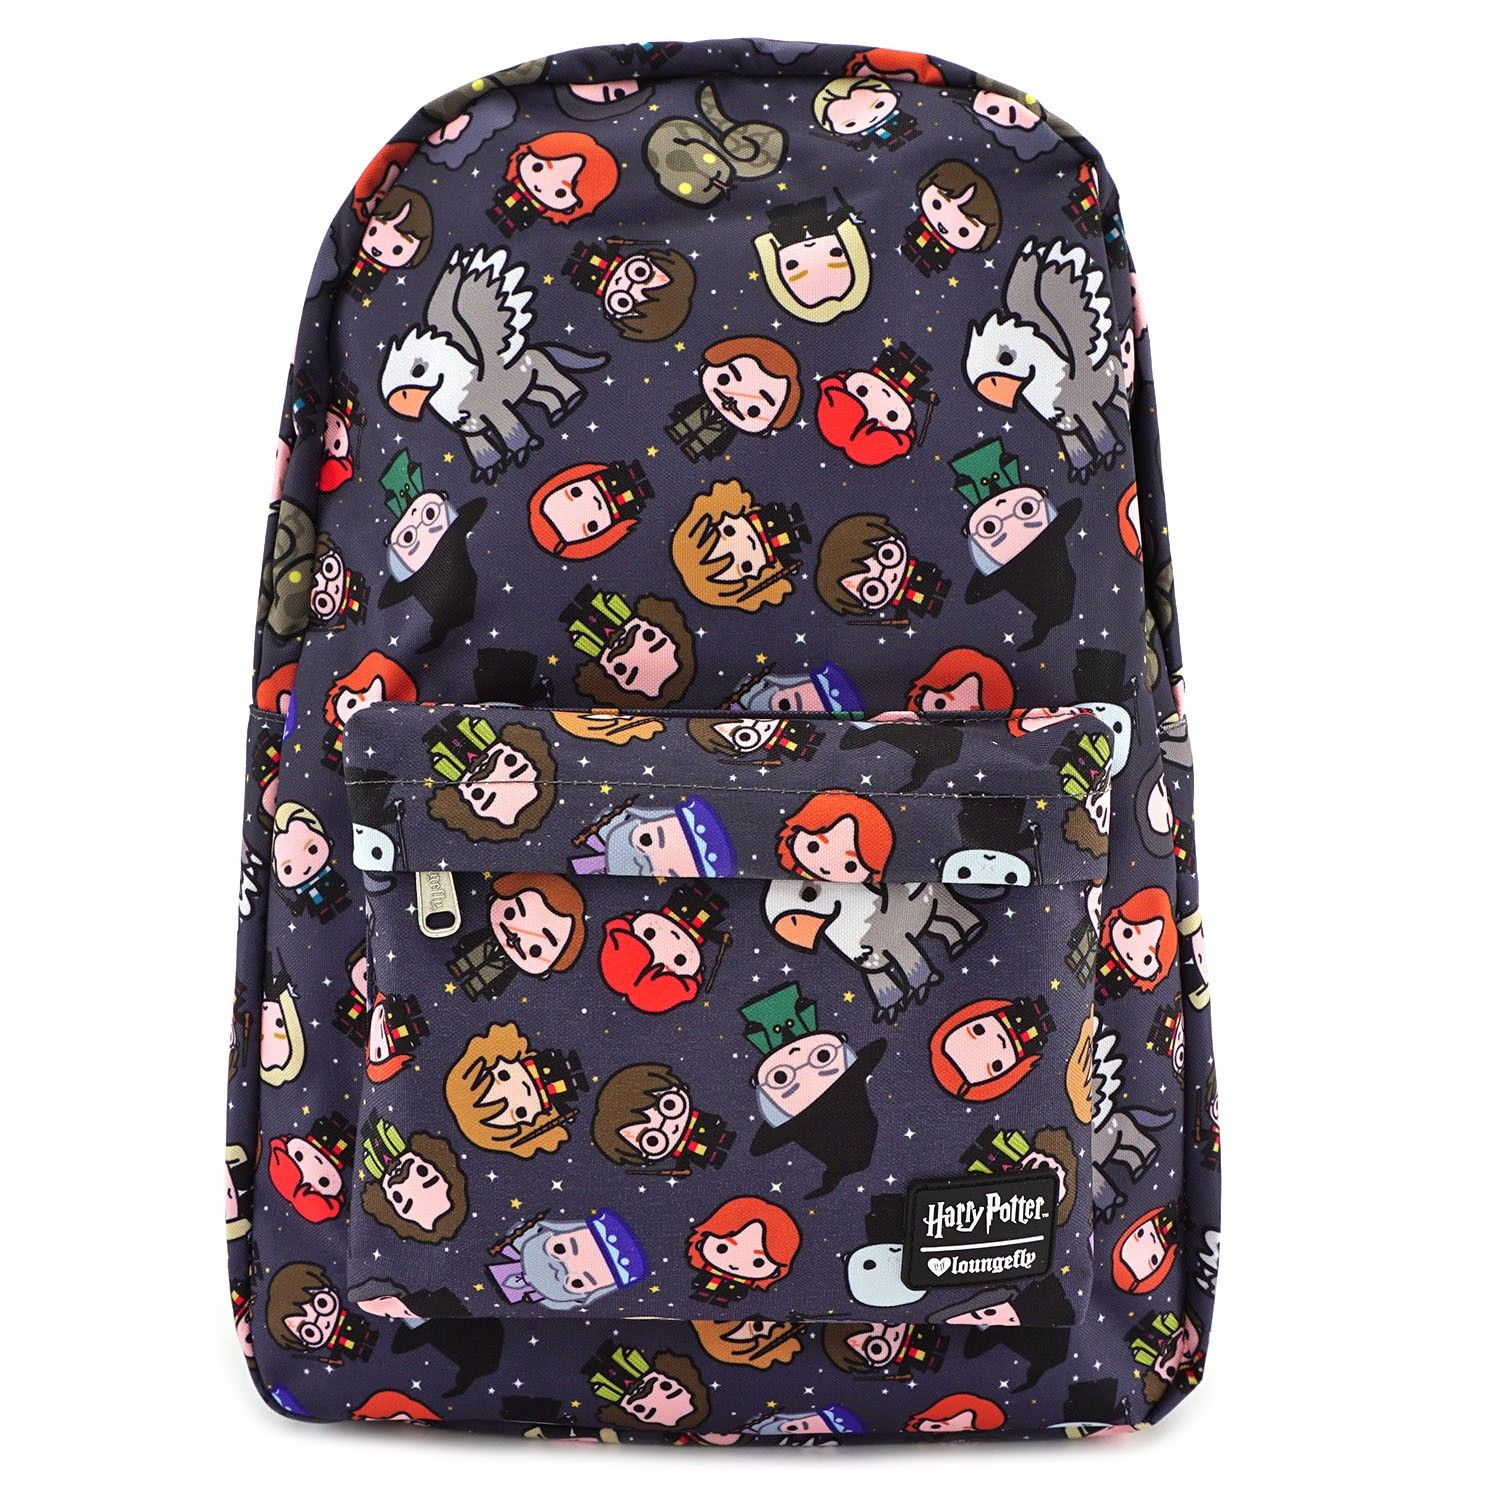 Loungefly x Harry Potter Chibi Character Print Backpack ... e0872ac605